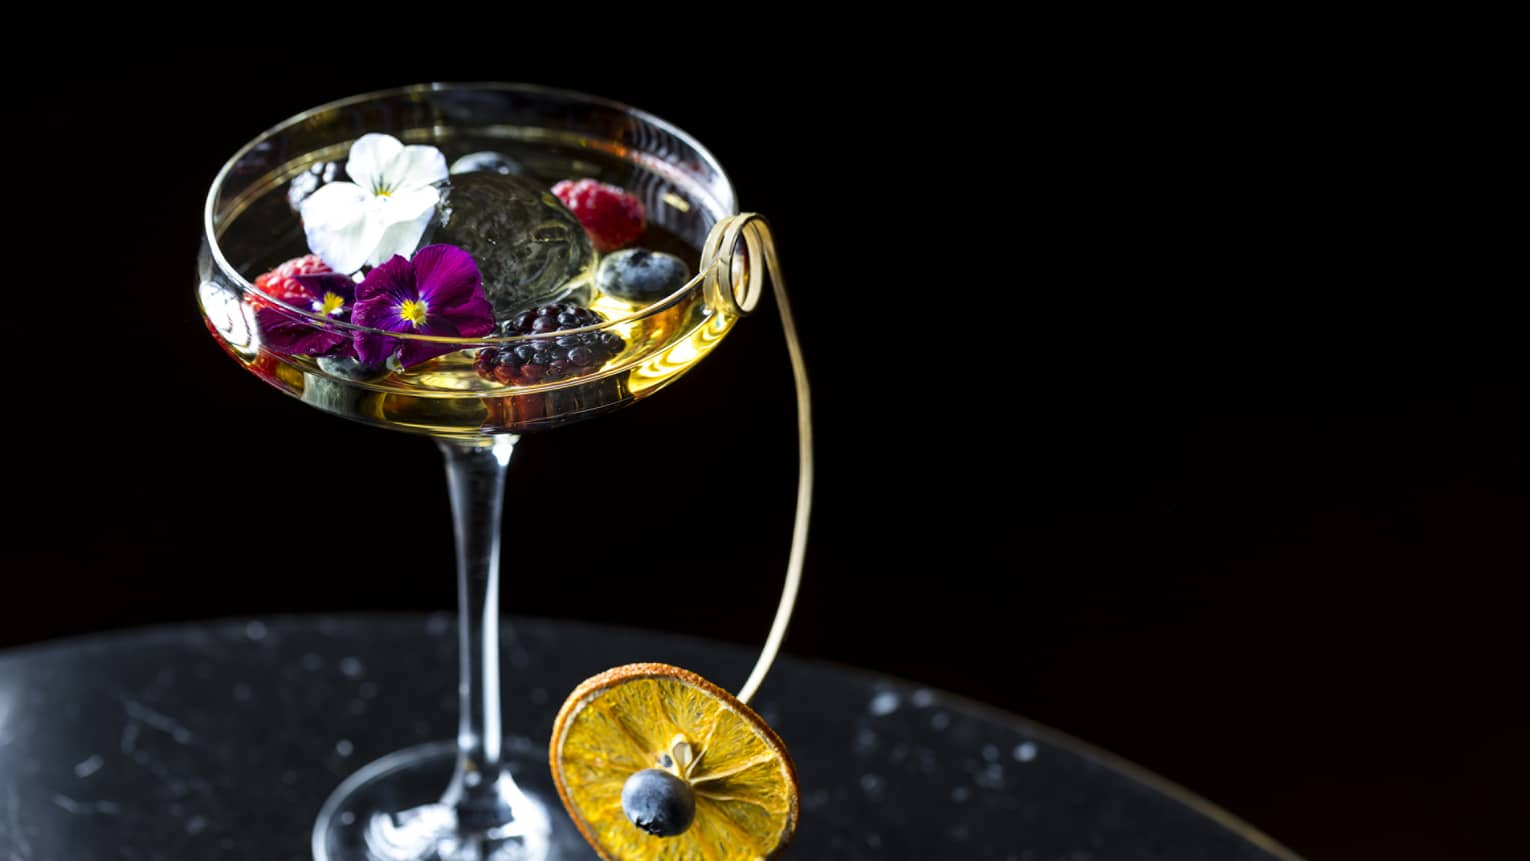 Cocktail glass. liquor garnished with small flowers, berries and dried orange wheel